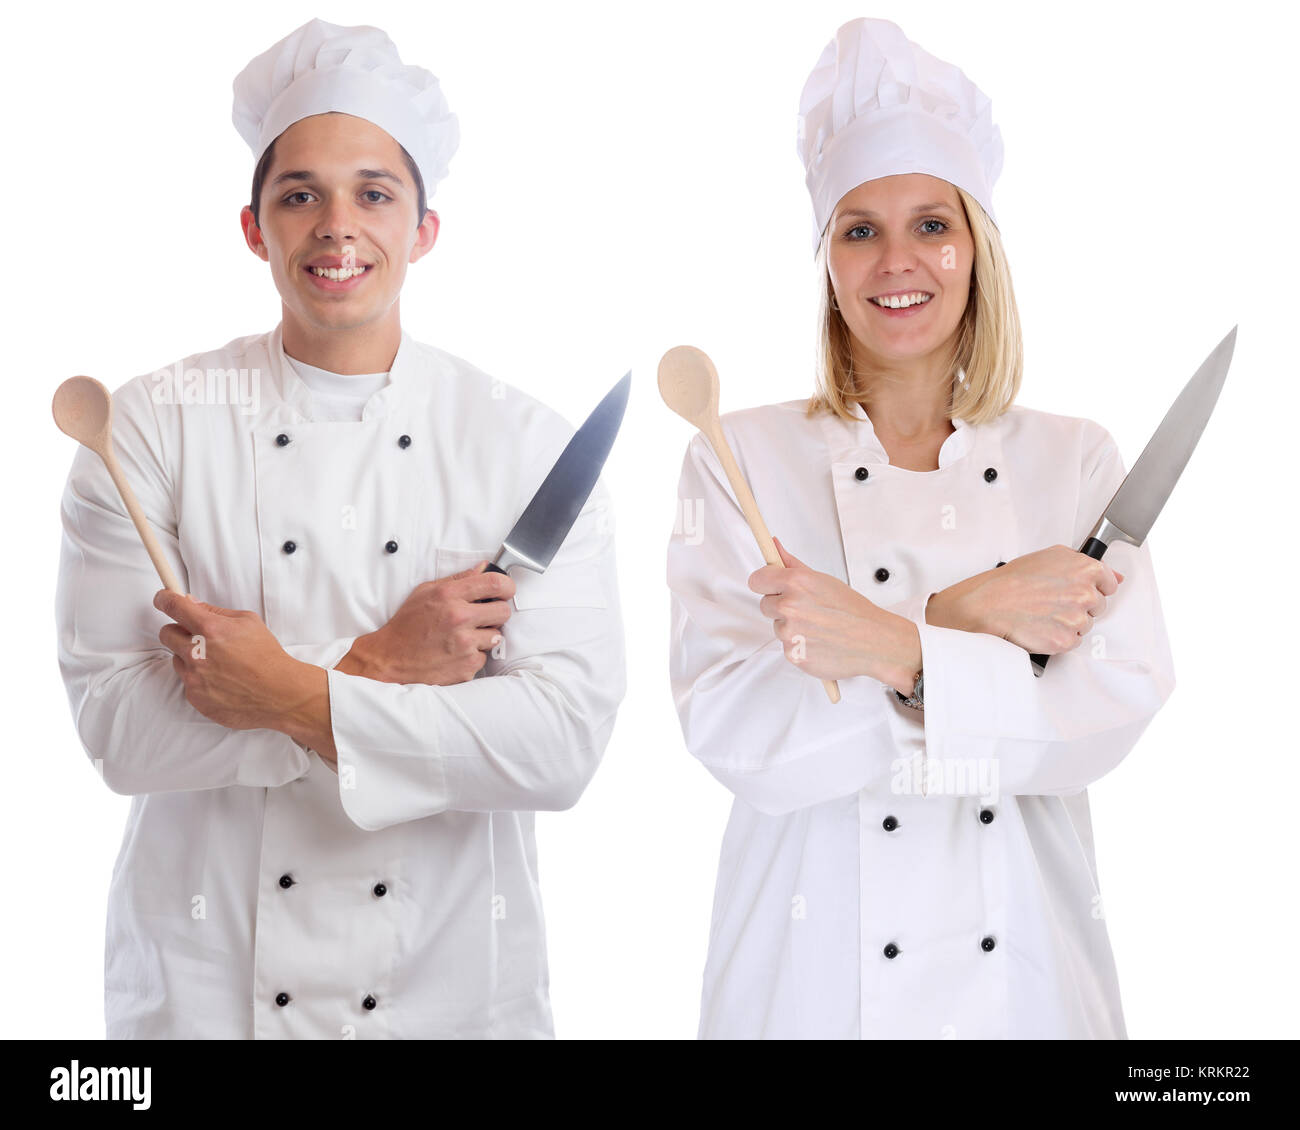 chef cooks young trainee trainees training apprentice cook occupation cut - Stock Image